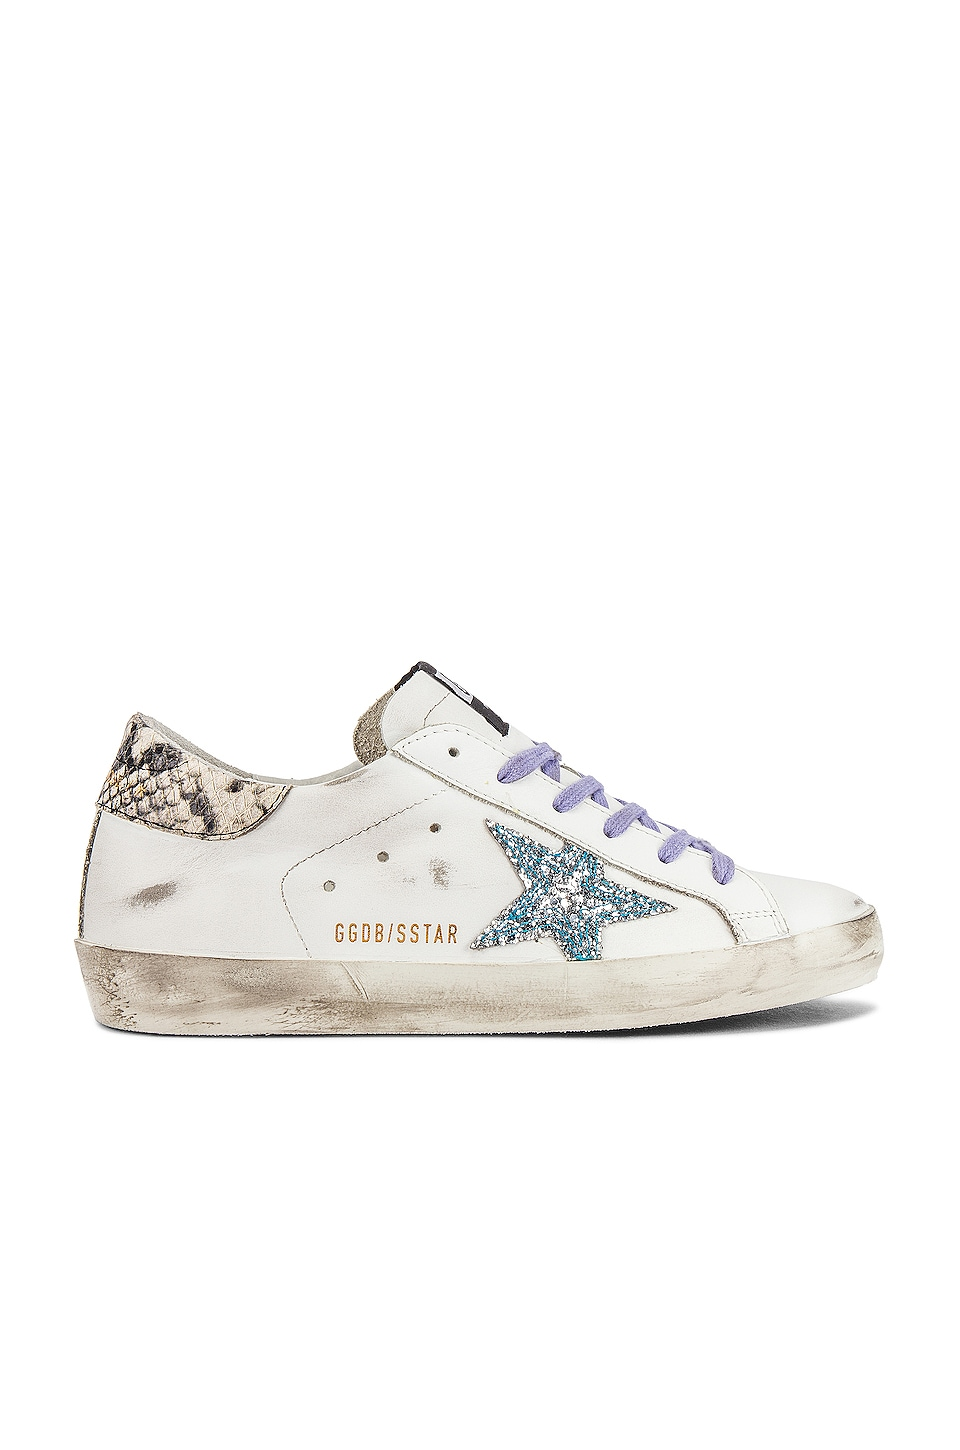 Golden Goose Superstar Sneaker in White, Glitter Star & Aqua